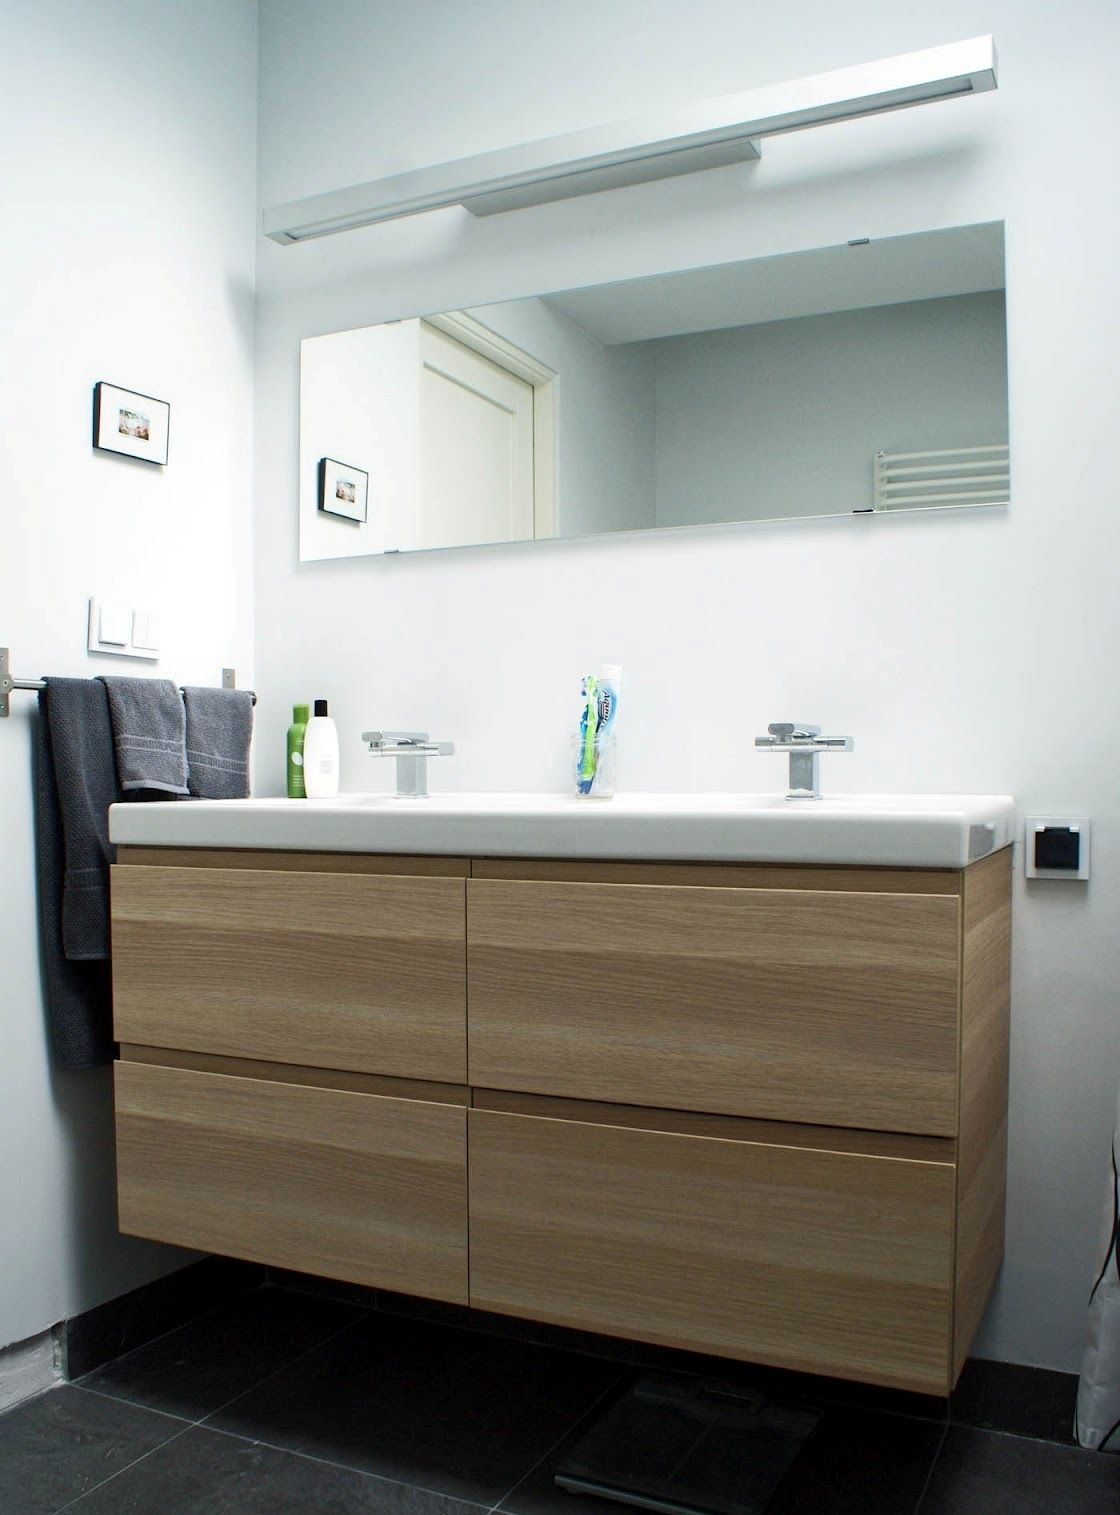 interesting Ikea Bathroom Vanity simple ikea bathroom vanity designing  ideas with floating wooden washing stand and - Interesting Ikea Bathroom Vanity Simple Ikea Bathroom Vanity